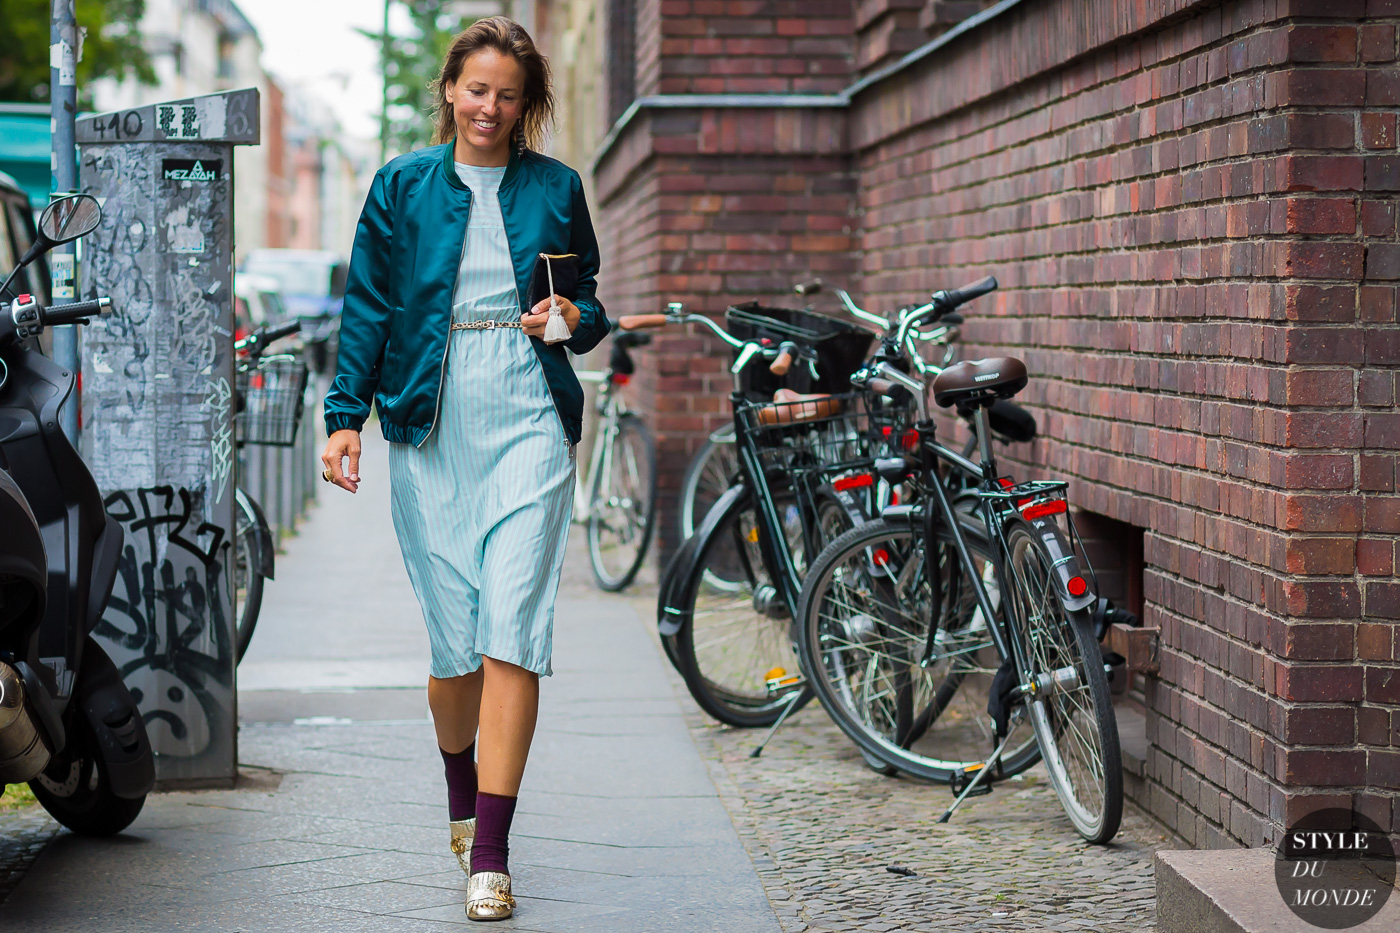 Berlin streetstyle by STYLEDUMONDE Street Style Fashion Photography